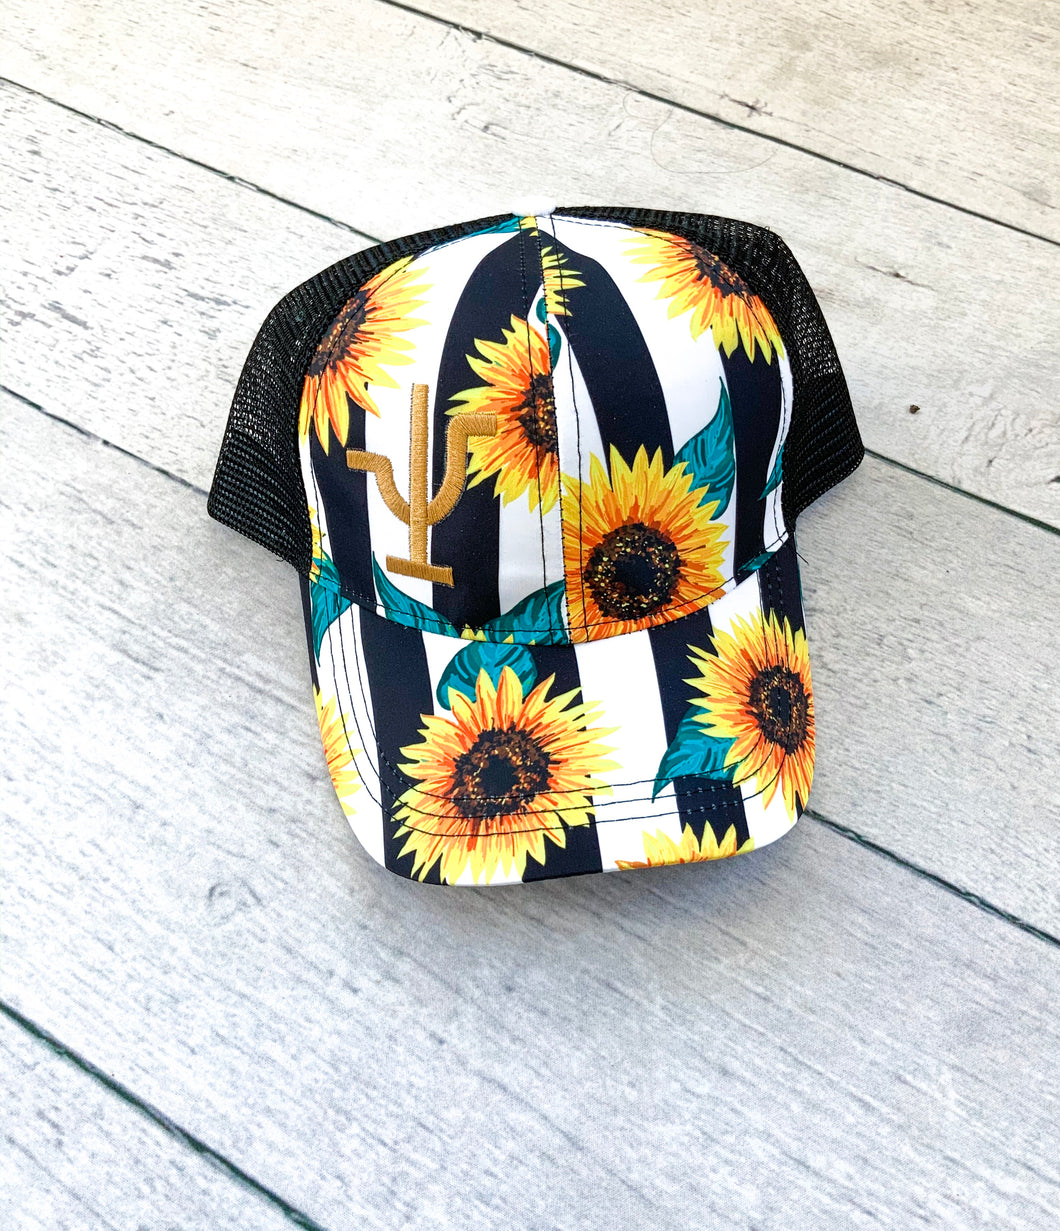 Sunflower TCB cap